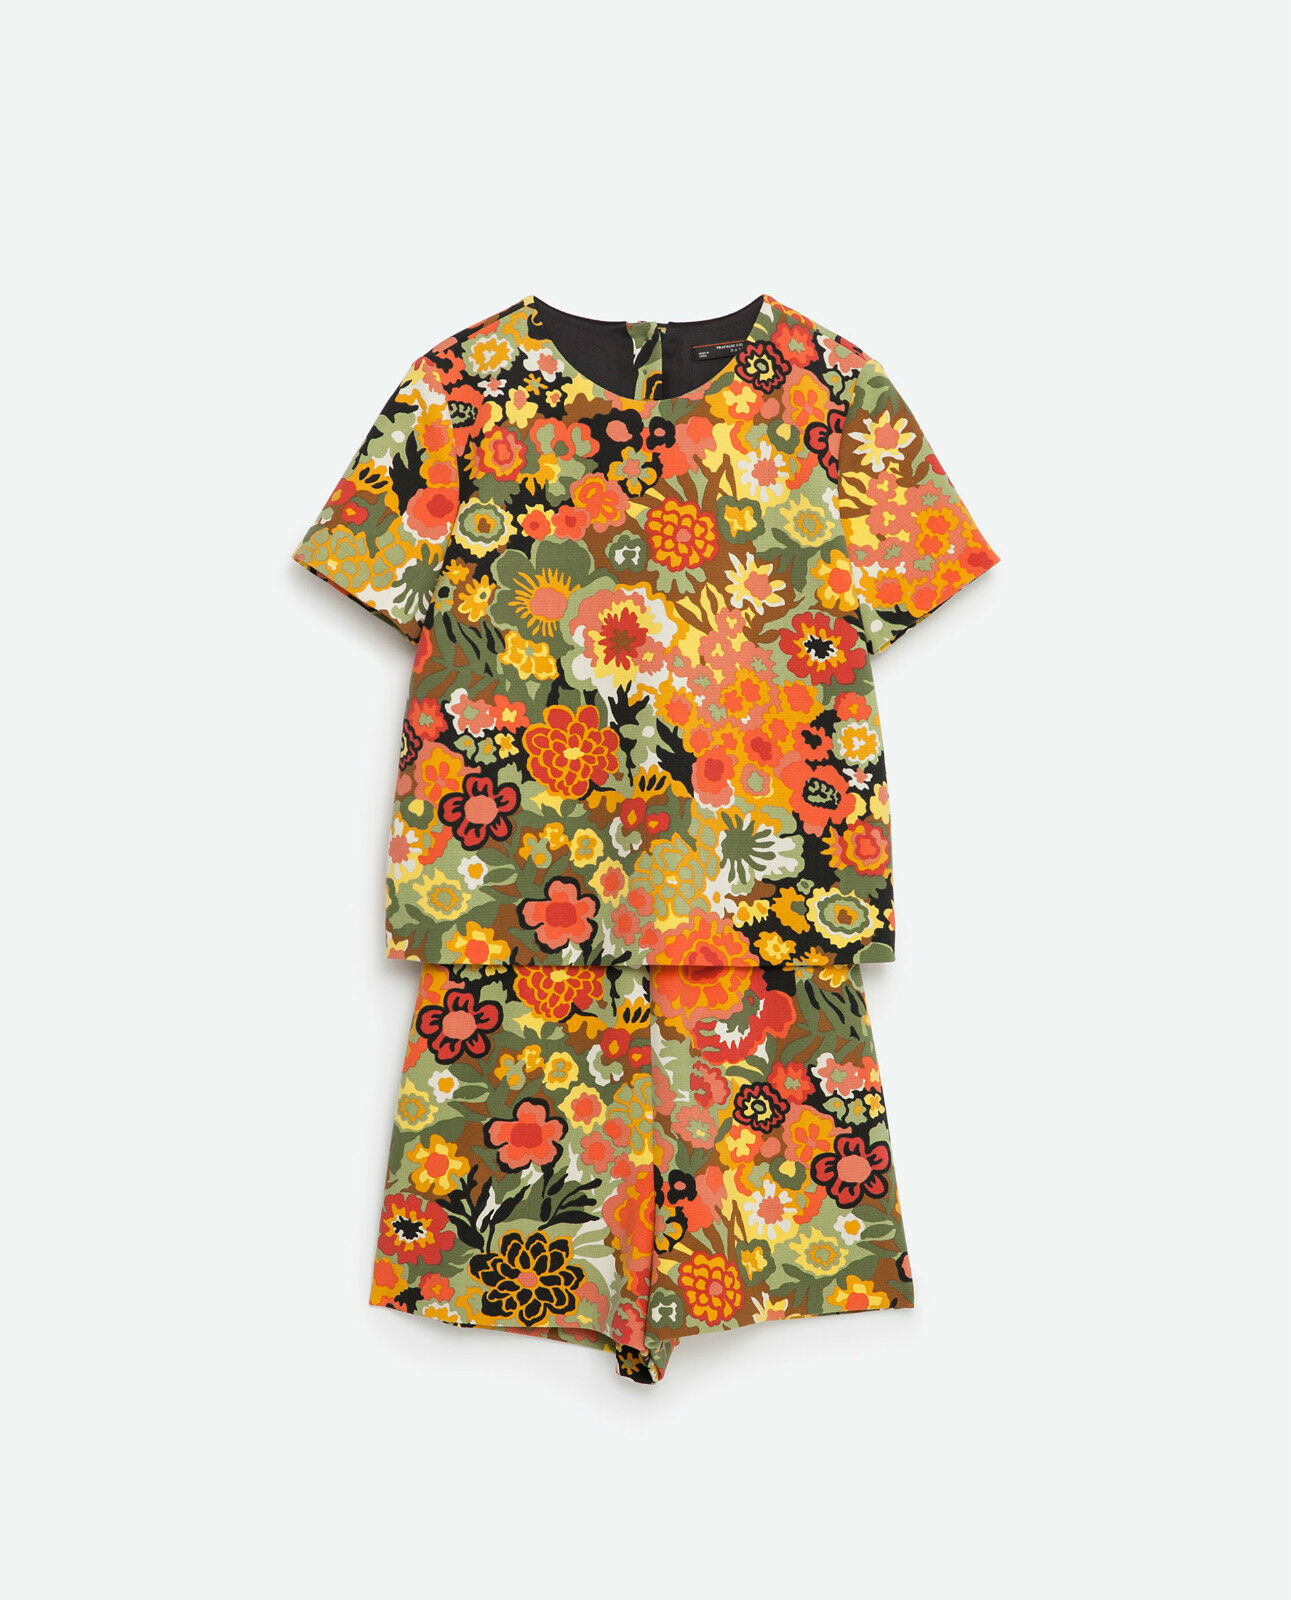 ZARA SHORT FLORAL JUMPSUIT, Size SMALL